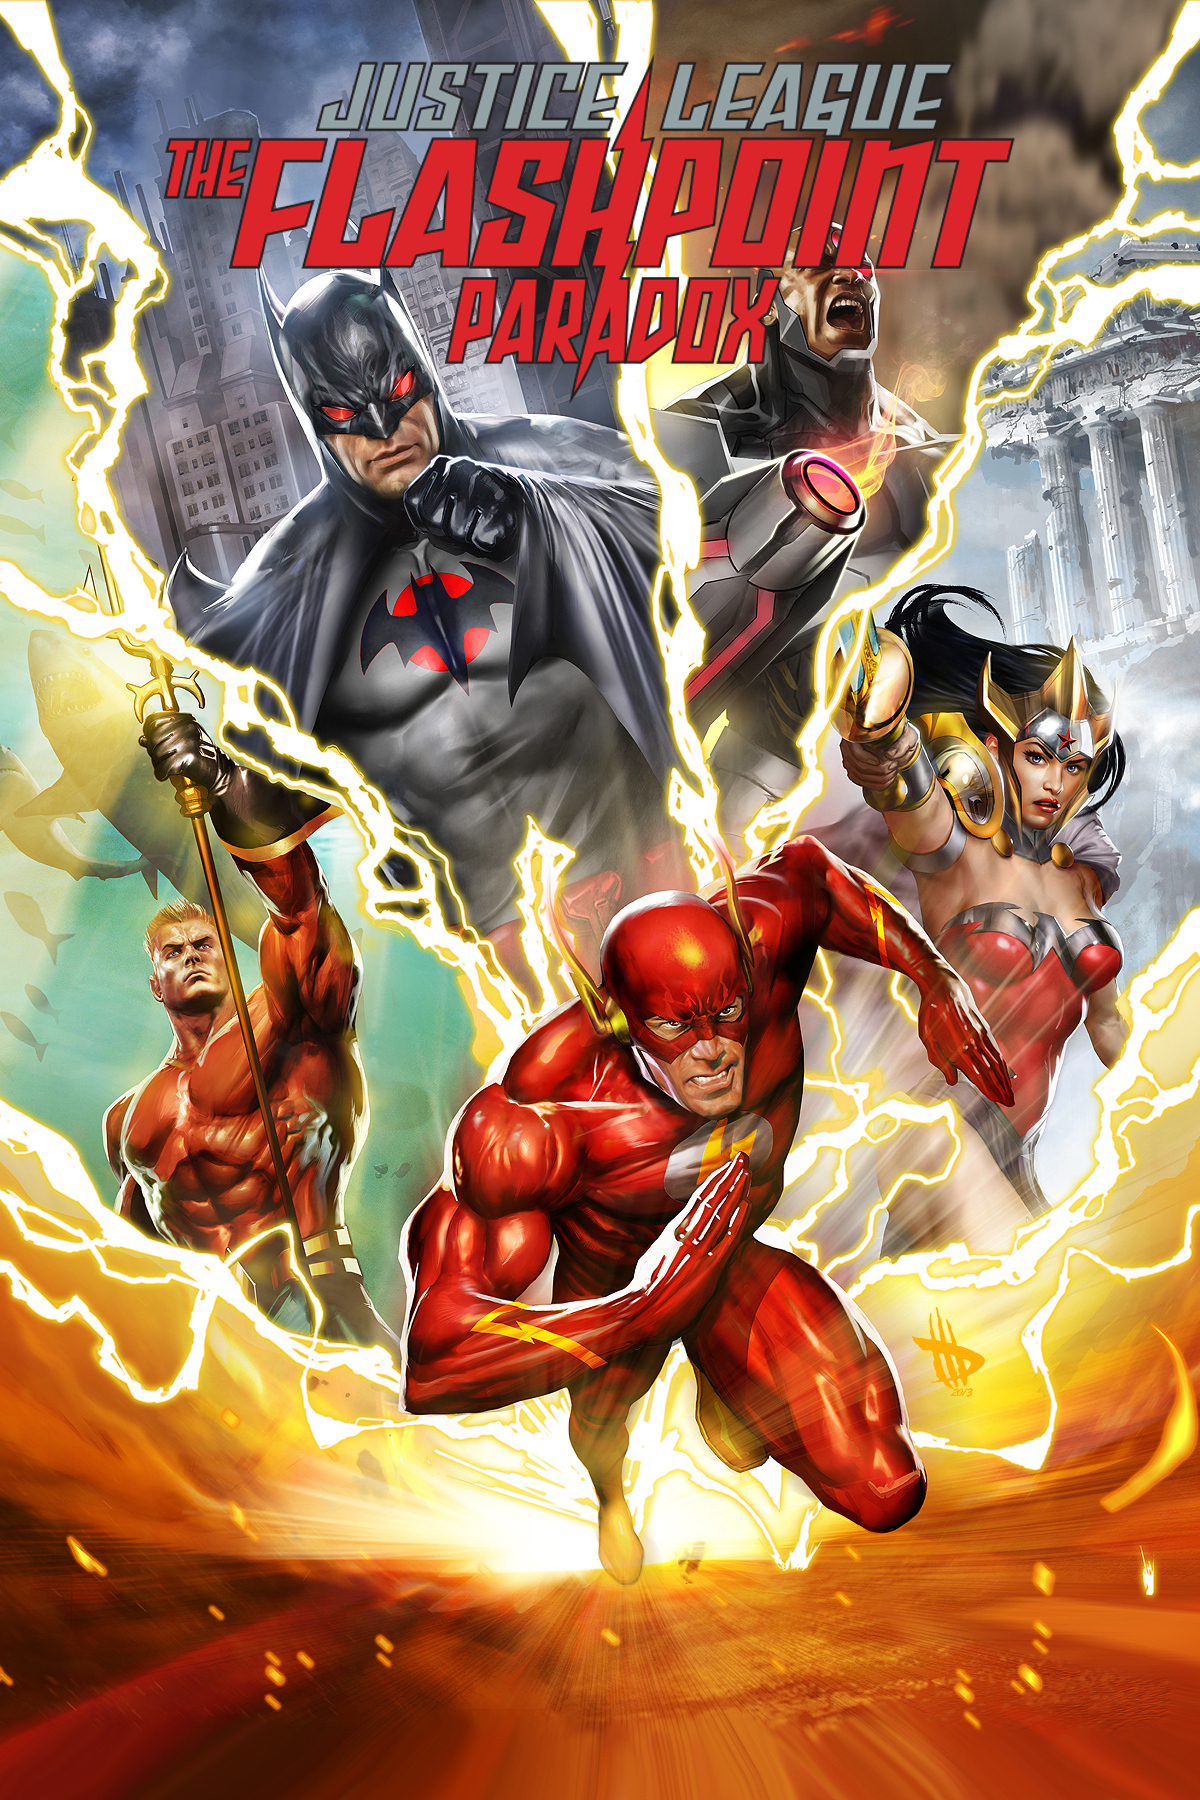 Justice League The Flashpoint Paradox Deutsch